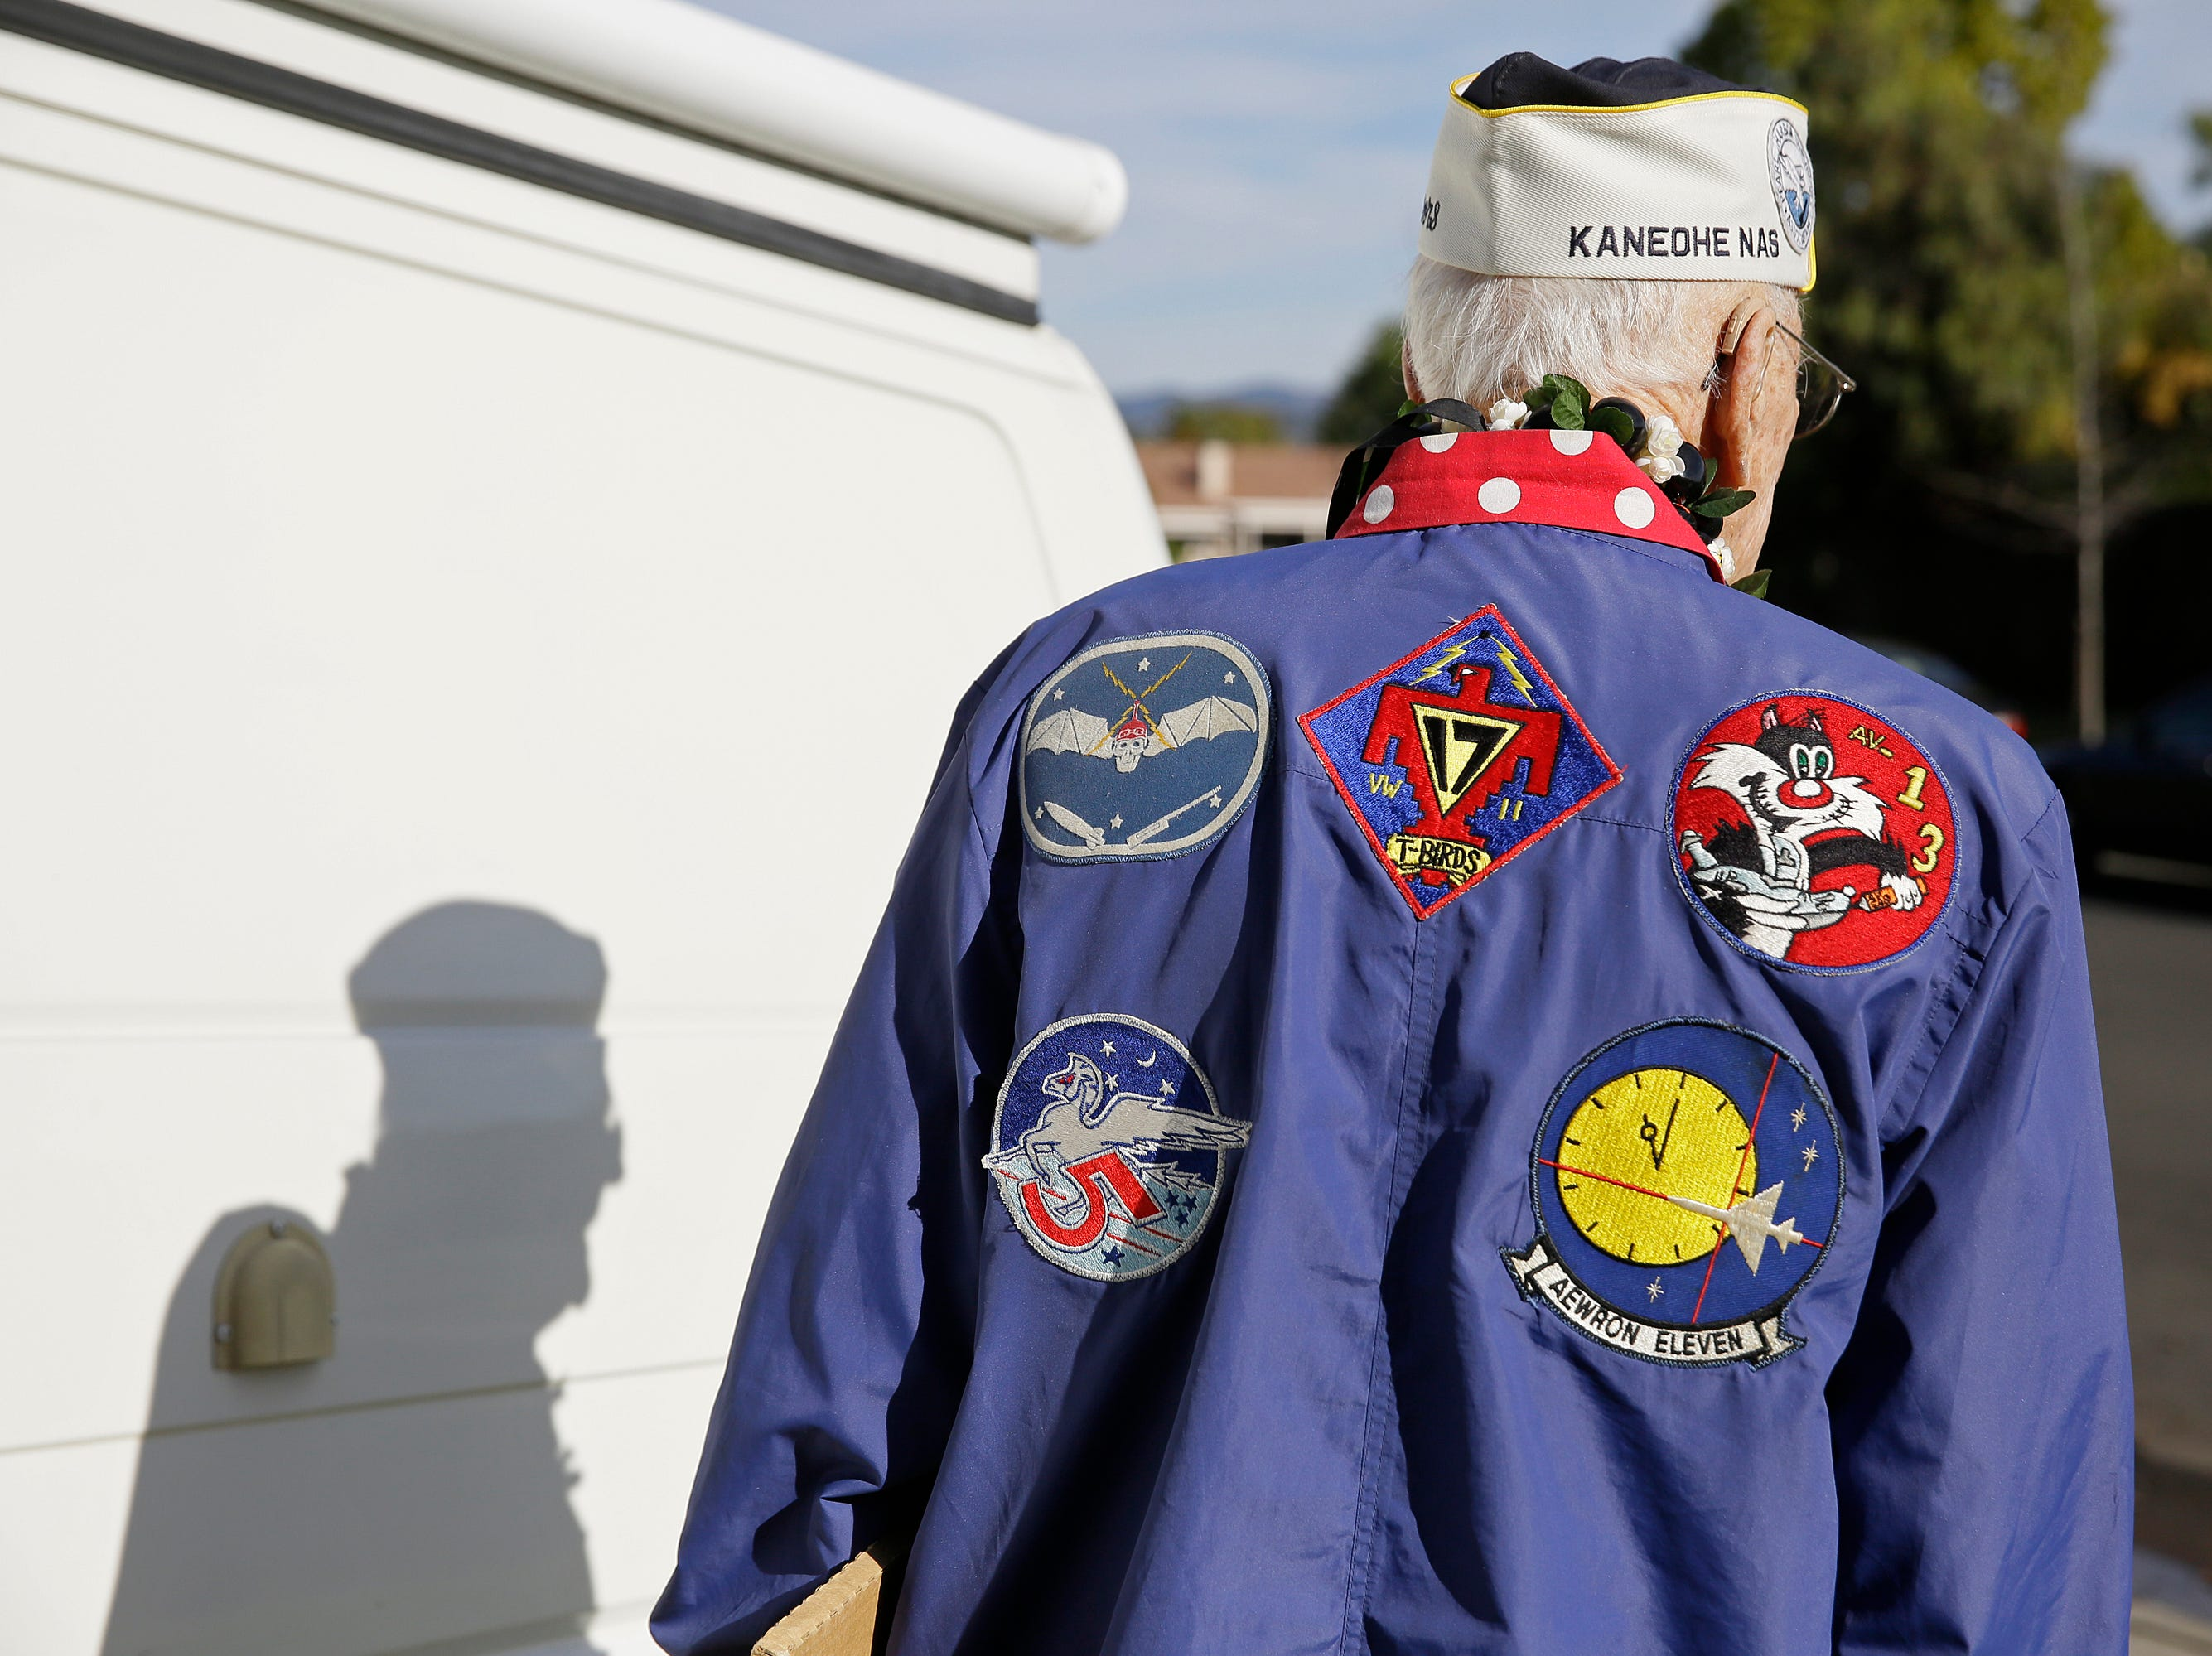 Don Long walks out to his camper van at his home Friday, Dec. 7, 2018, in Napa, Calif., before driving to attend a number of Pearl Harbor remembrances. Retired U.S. Navy Cmdr. Don Long wasn't at Pearl Harbor when Japanese war planes started bombing Hawaii on December 7, 1941, he was on the opposite side of Oahu standing watch aboard an anchored military seaplane in Kaneohe Bay. But the wave of bombs and bullets reached his military installation soon after Pearl Harbor was struck, and the young sailor watched from afar as buildings and planes started to explode all around him. On the 77th anniversary of the attack, Long will remember from his home where the 97-year-old survivor will reflect and honor those who died.